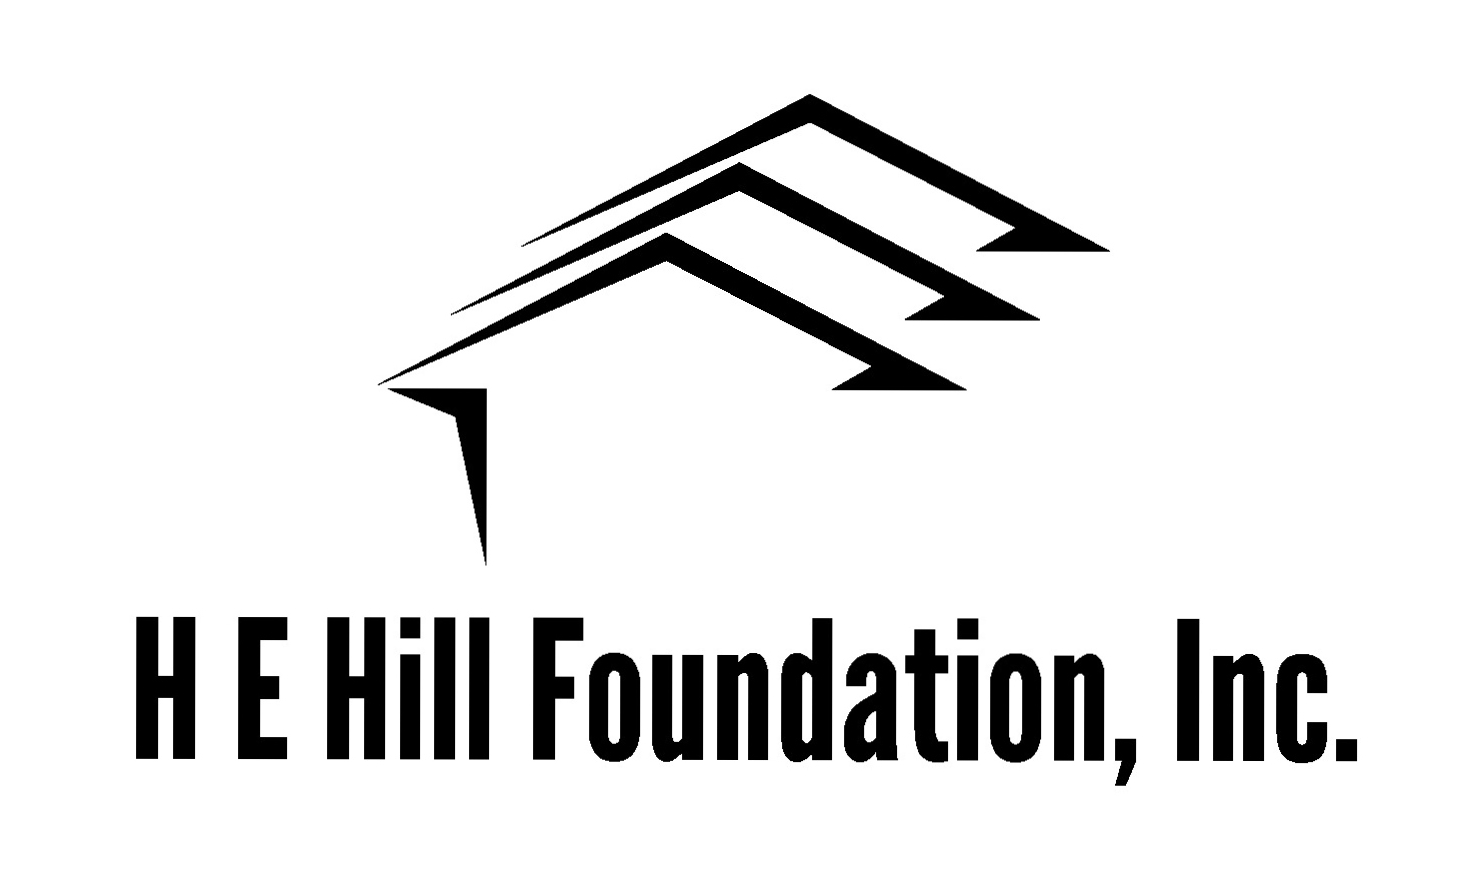 Hill foundation LOGO.jpg